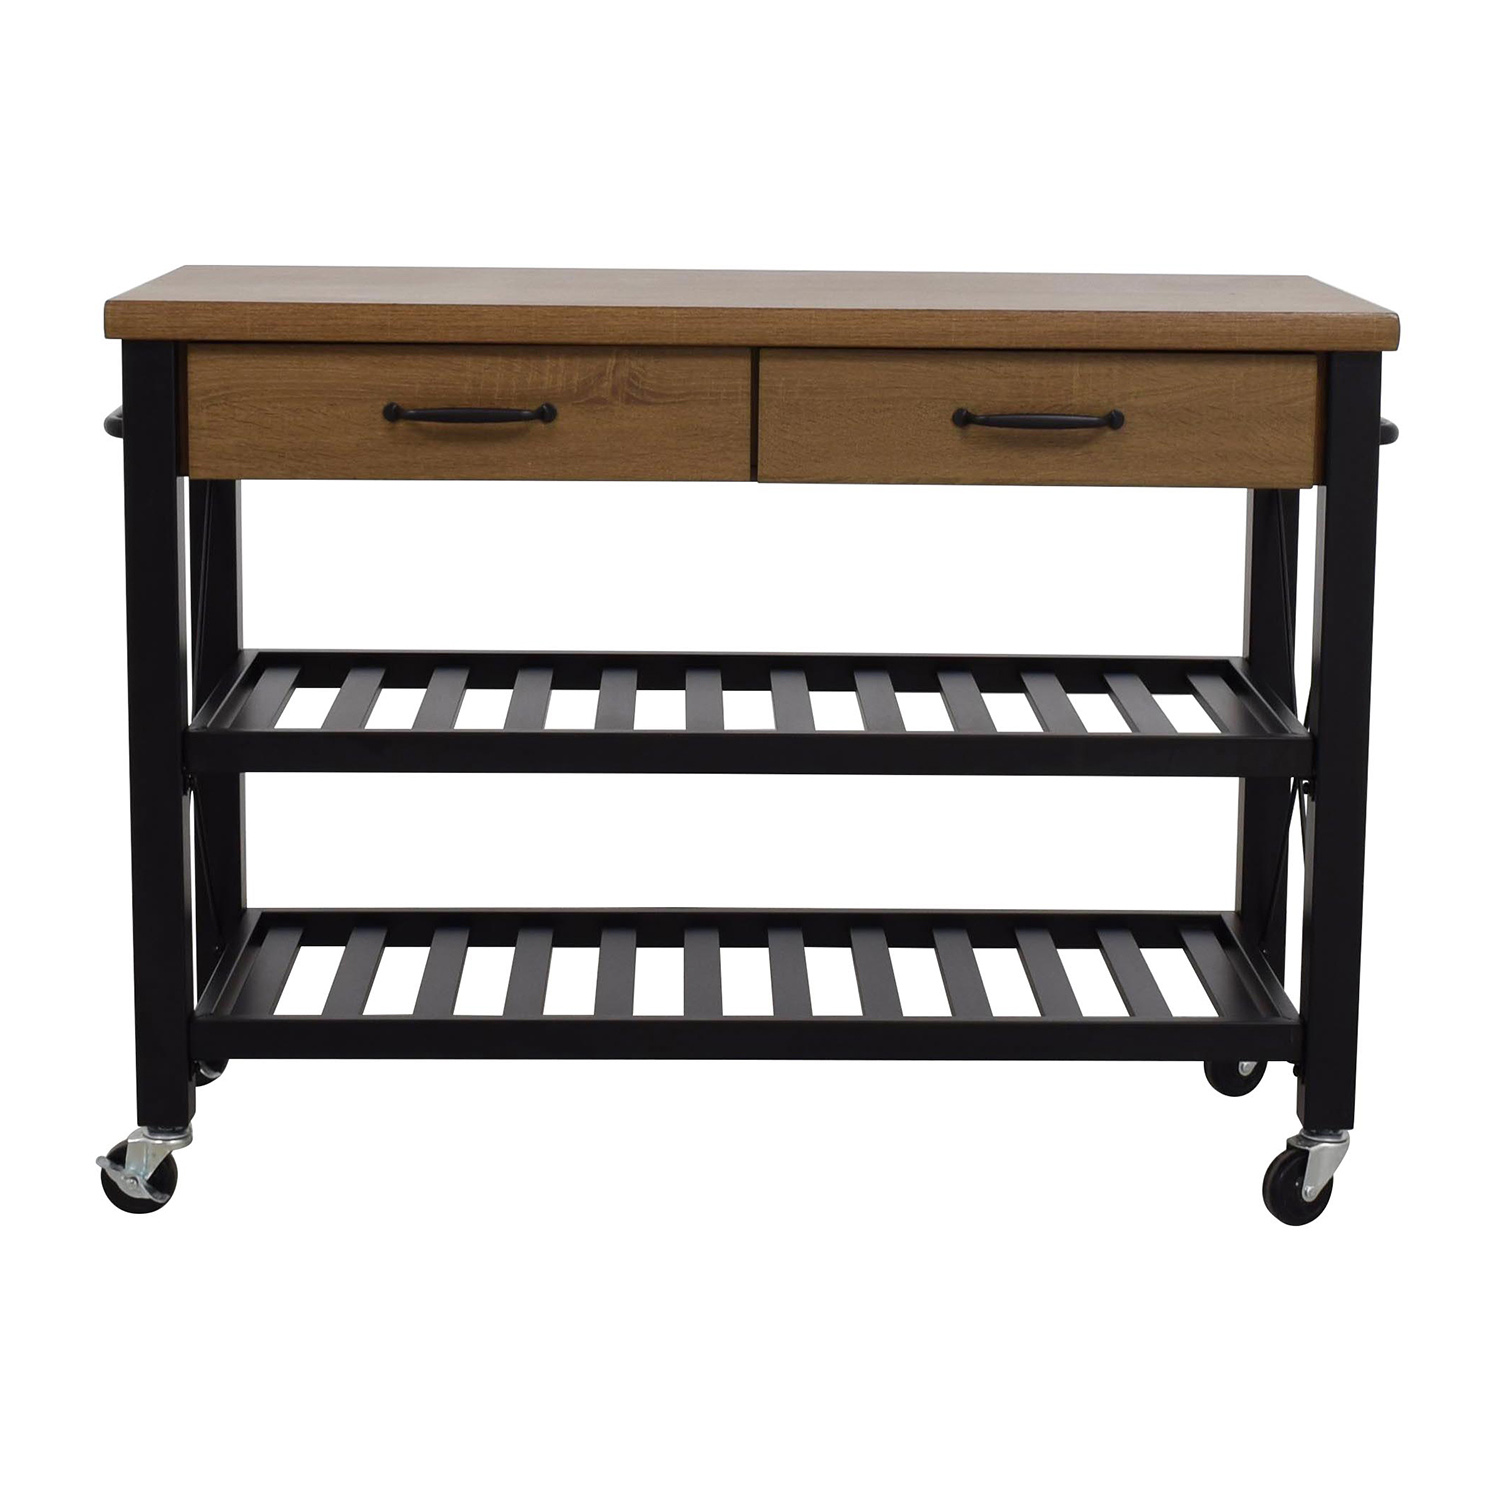 Walmart Kitchen Island Cart on Casters / Tables